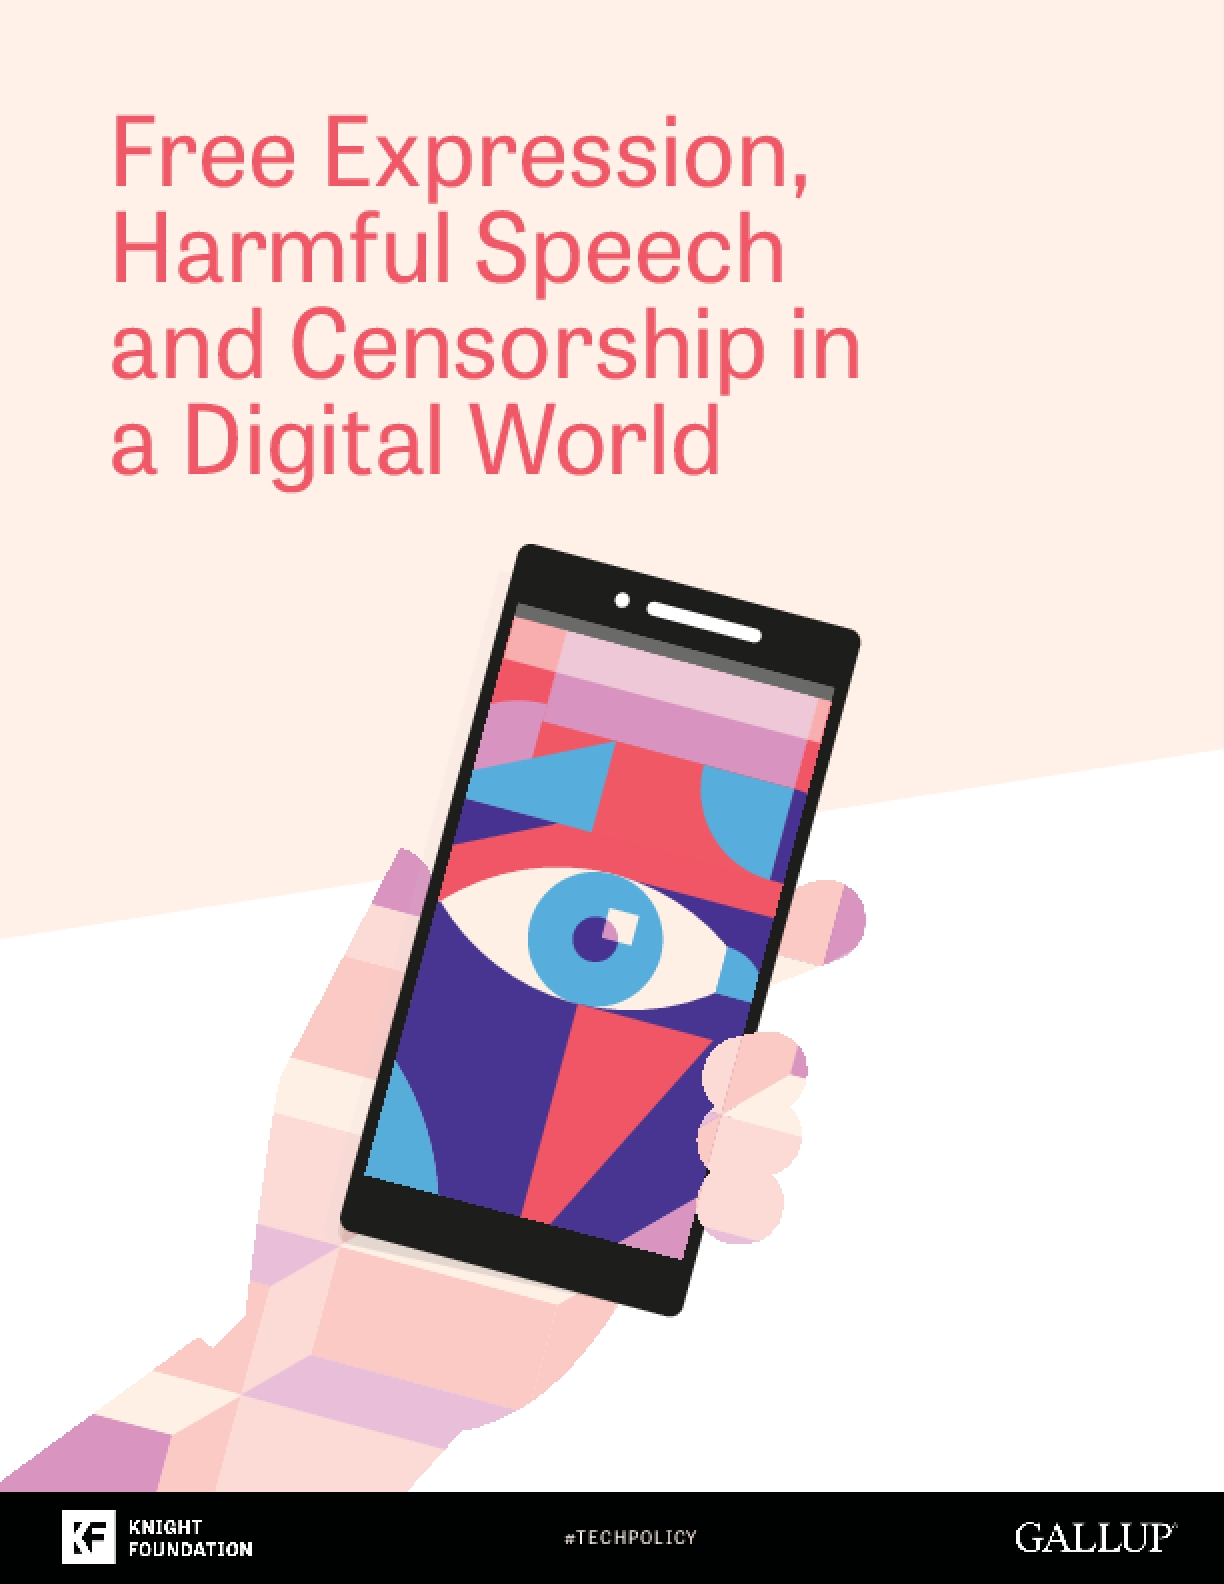 Free Expression, Harmful Speech, and Censorship in a Digital World